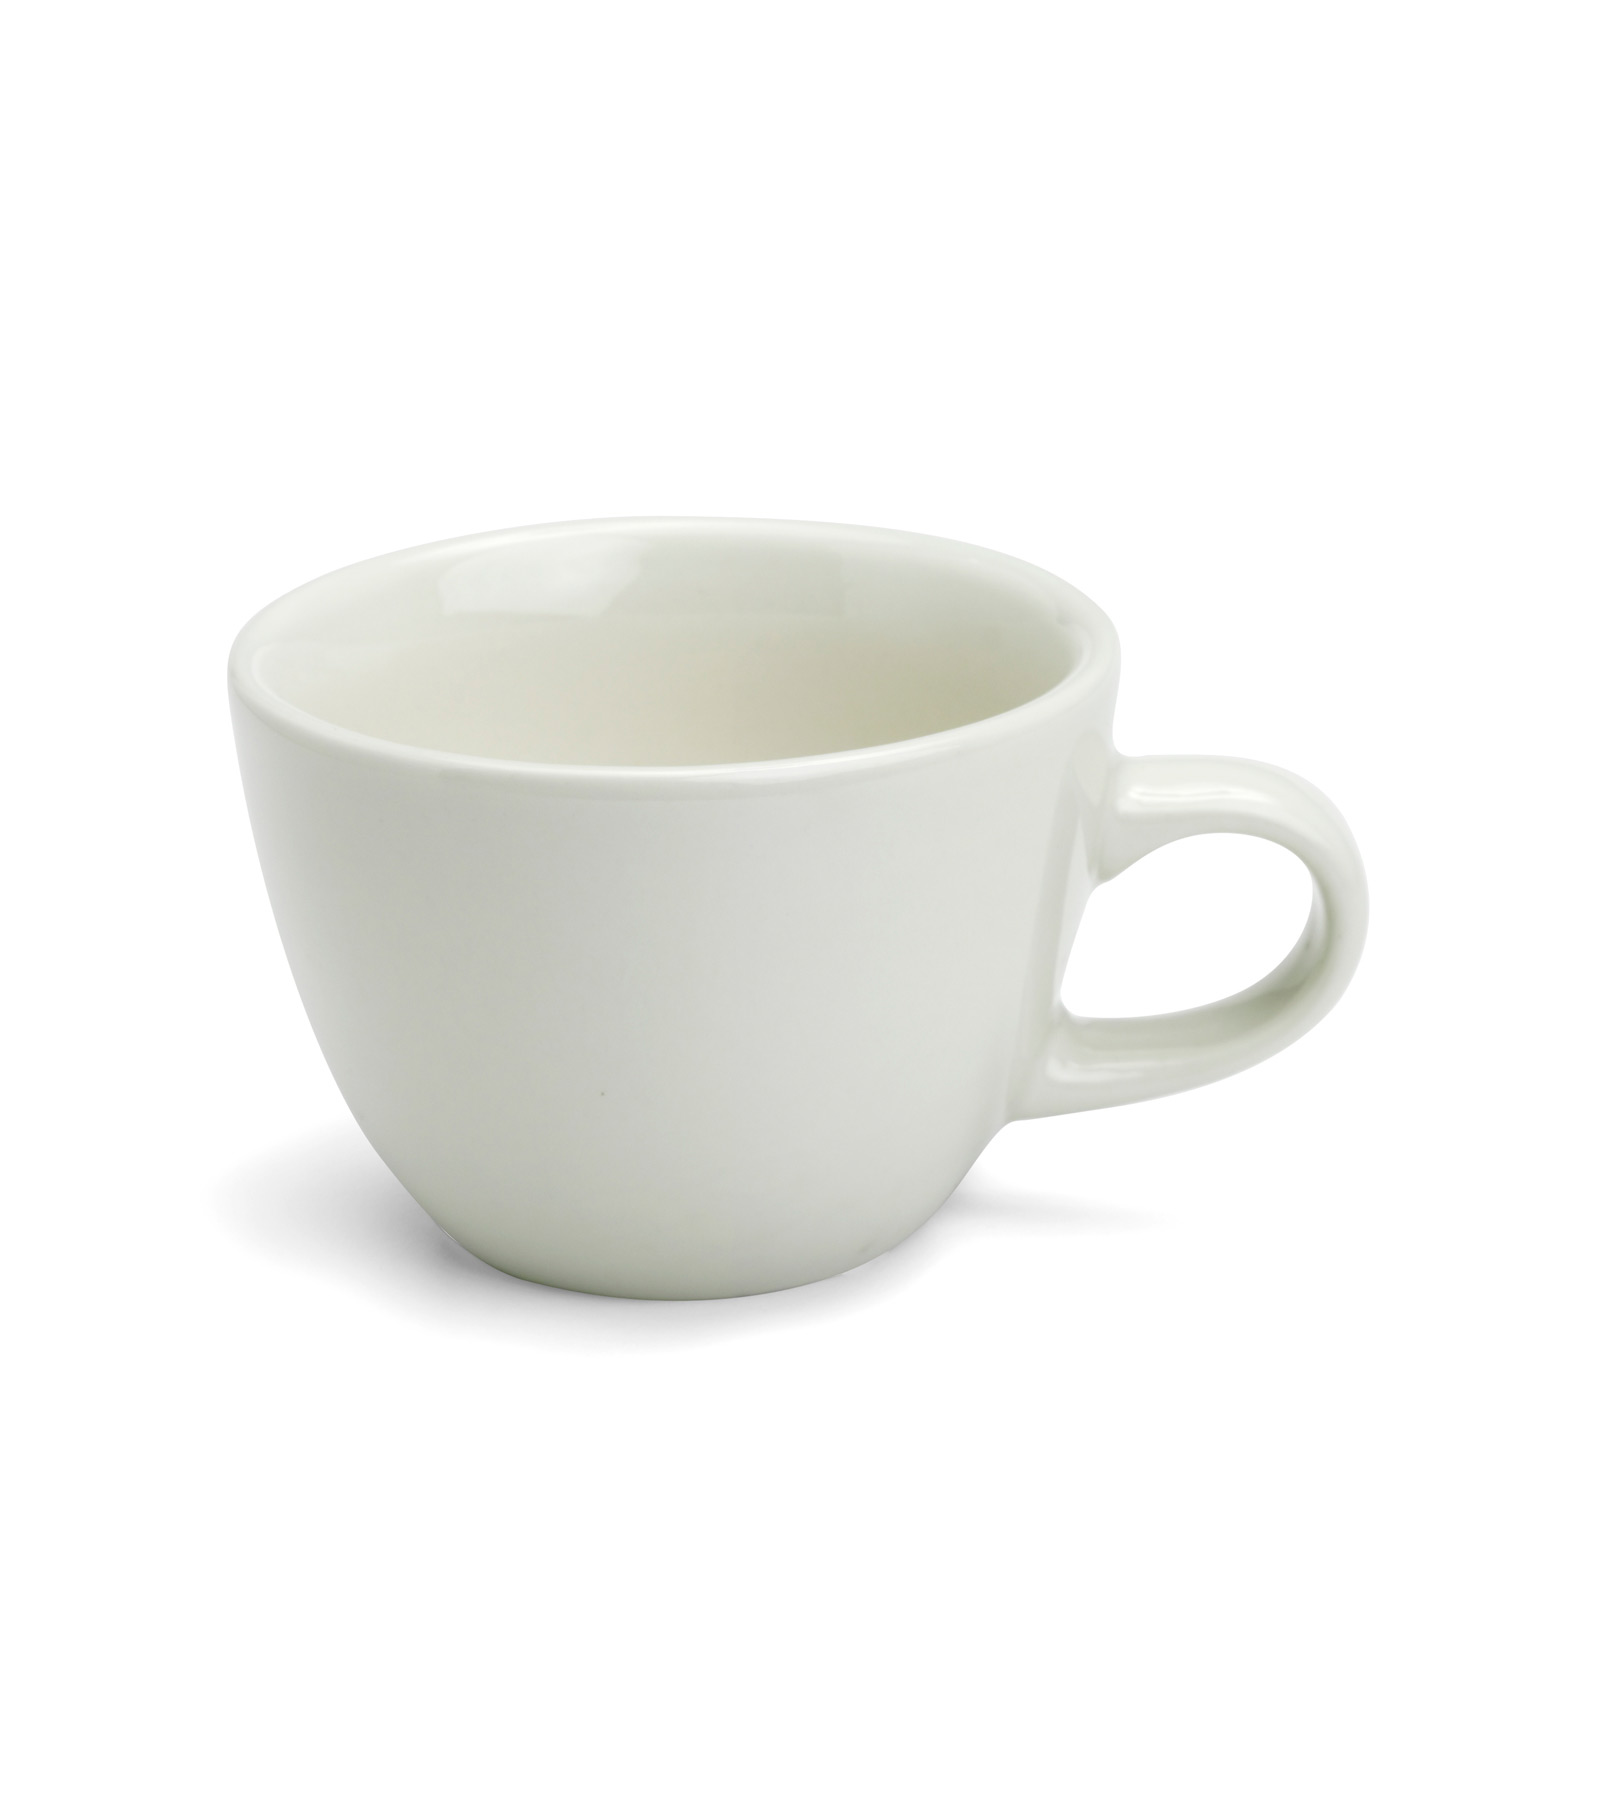 Cups photo